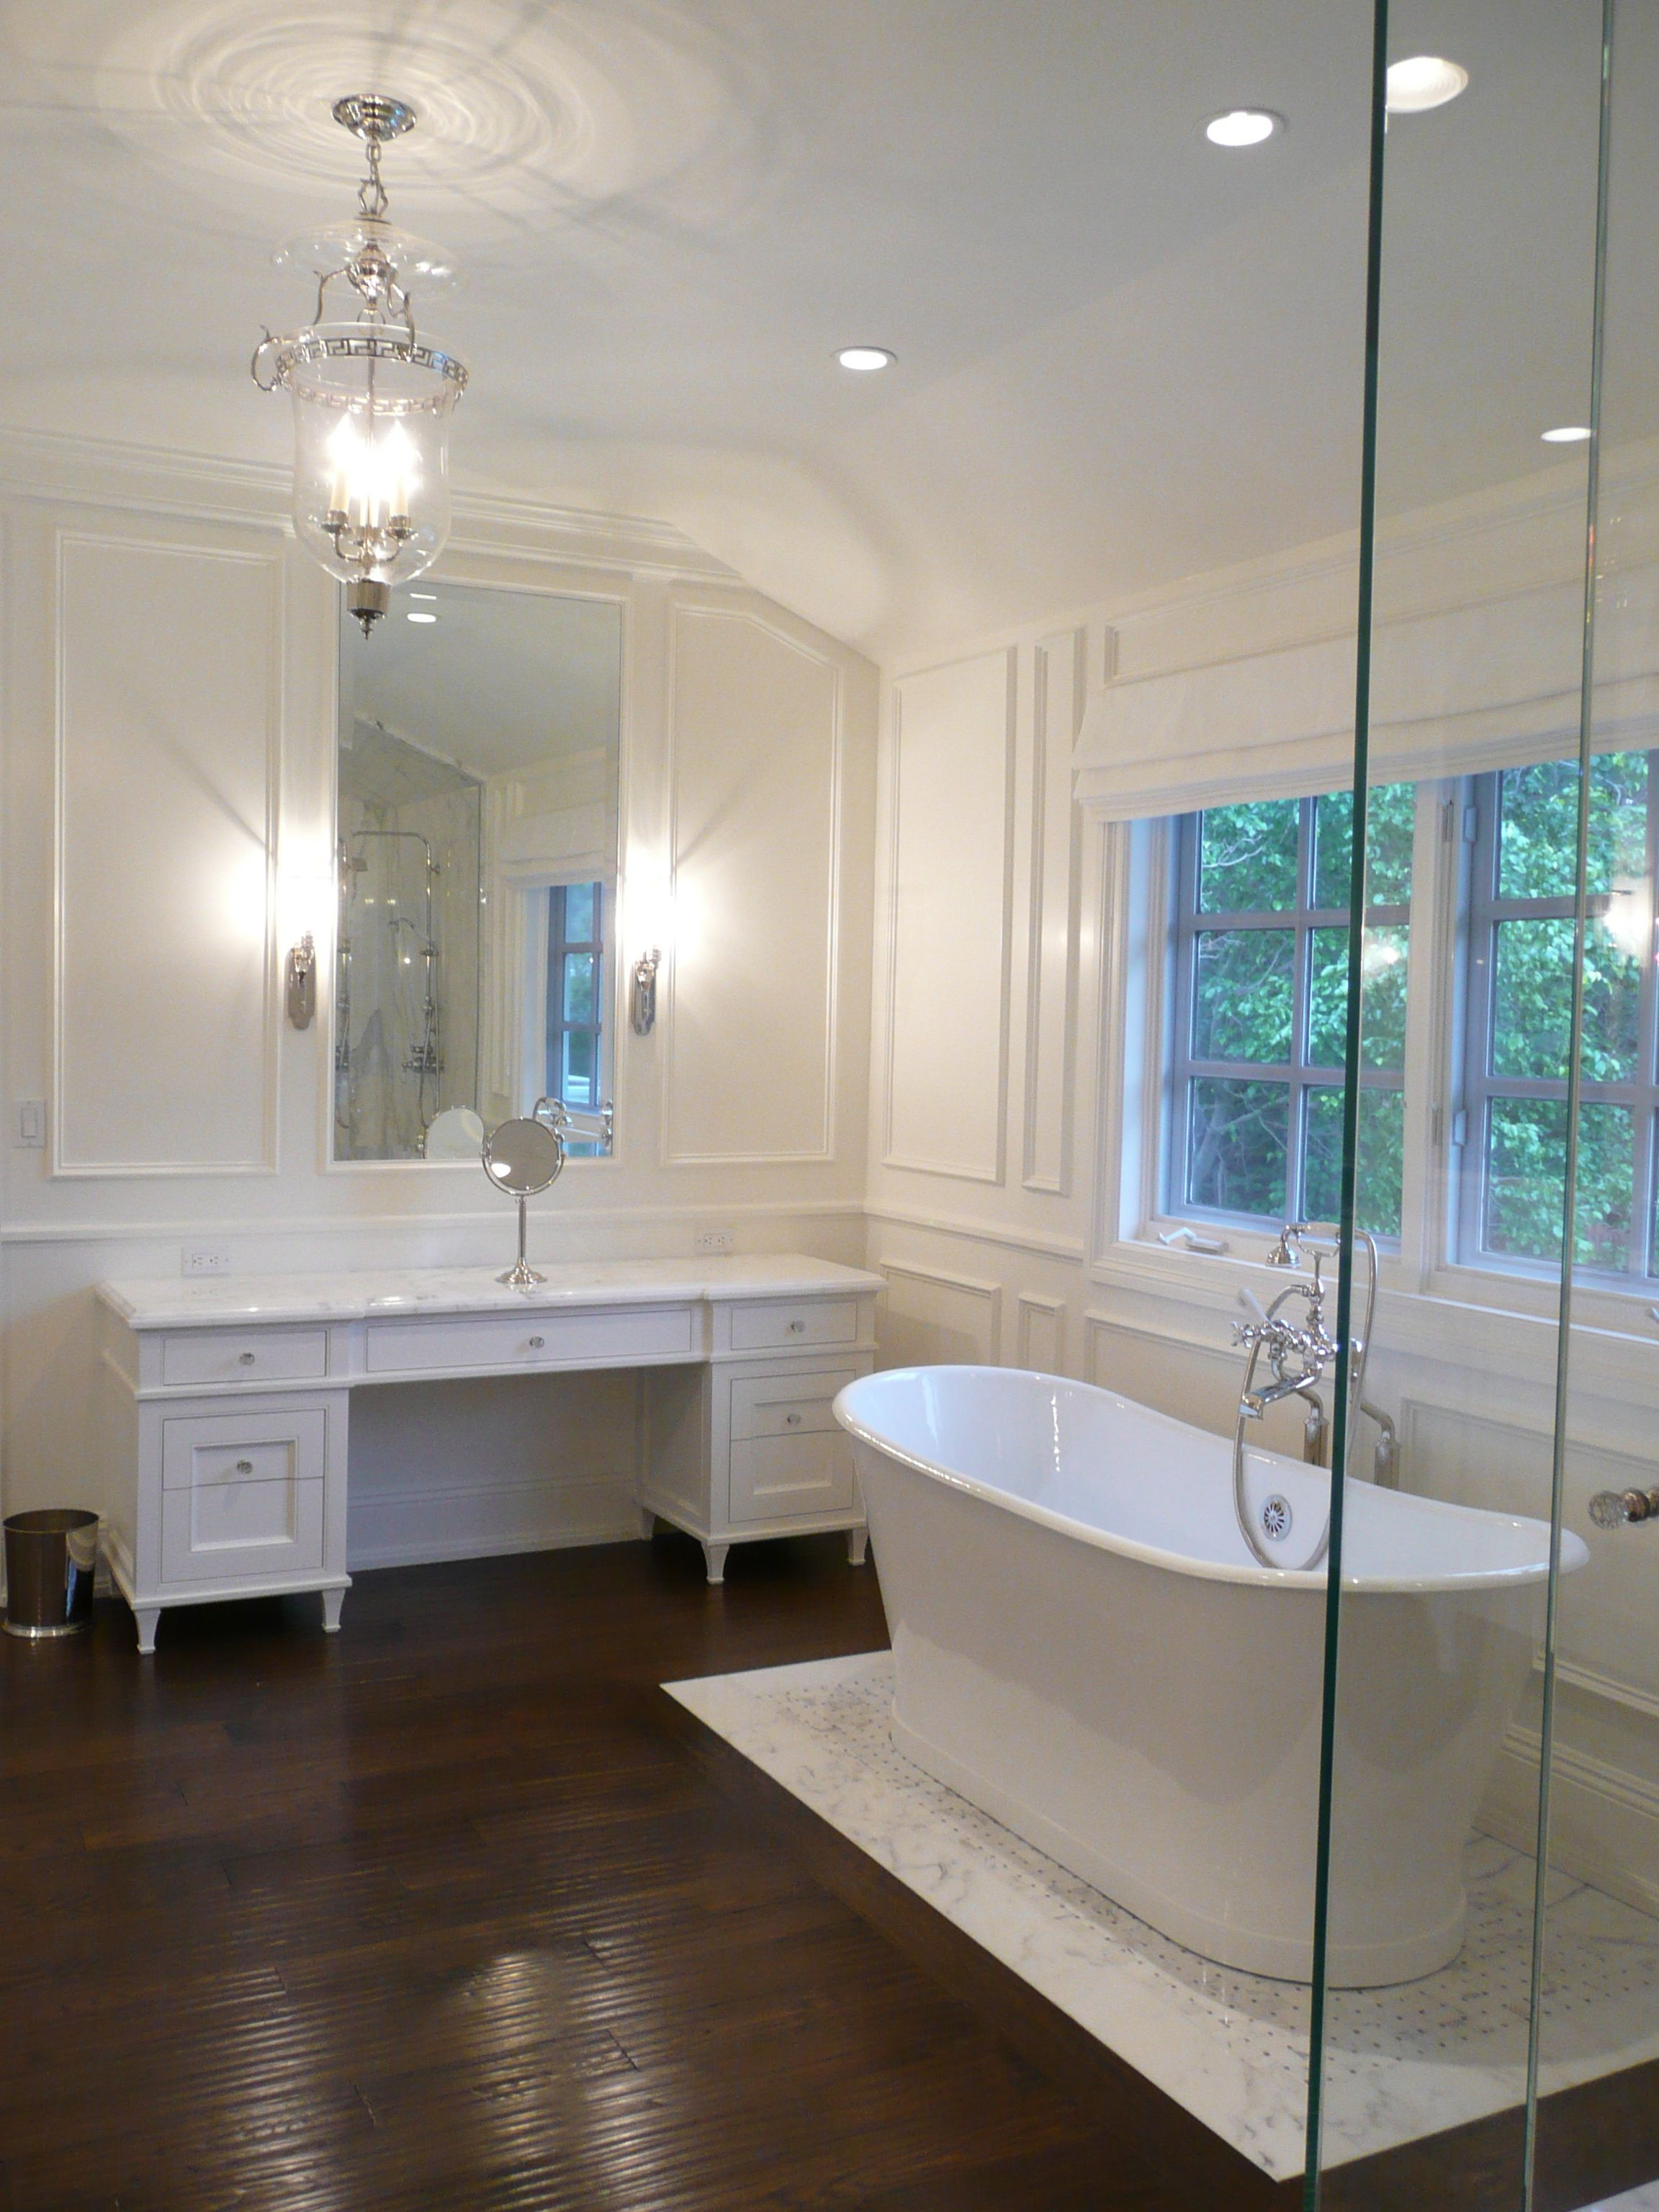 Outstanding Beautiful Bathroom With Free Standing Tub Largest Home Design Picture Inspirations Pitcheantrous